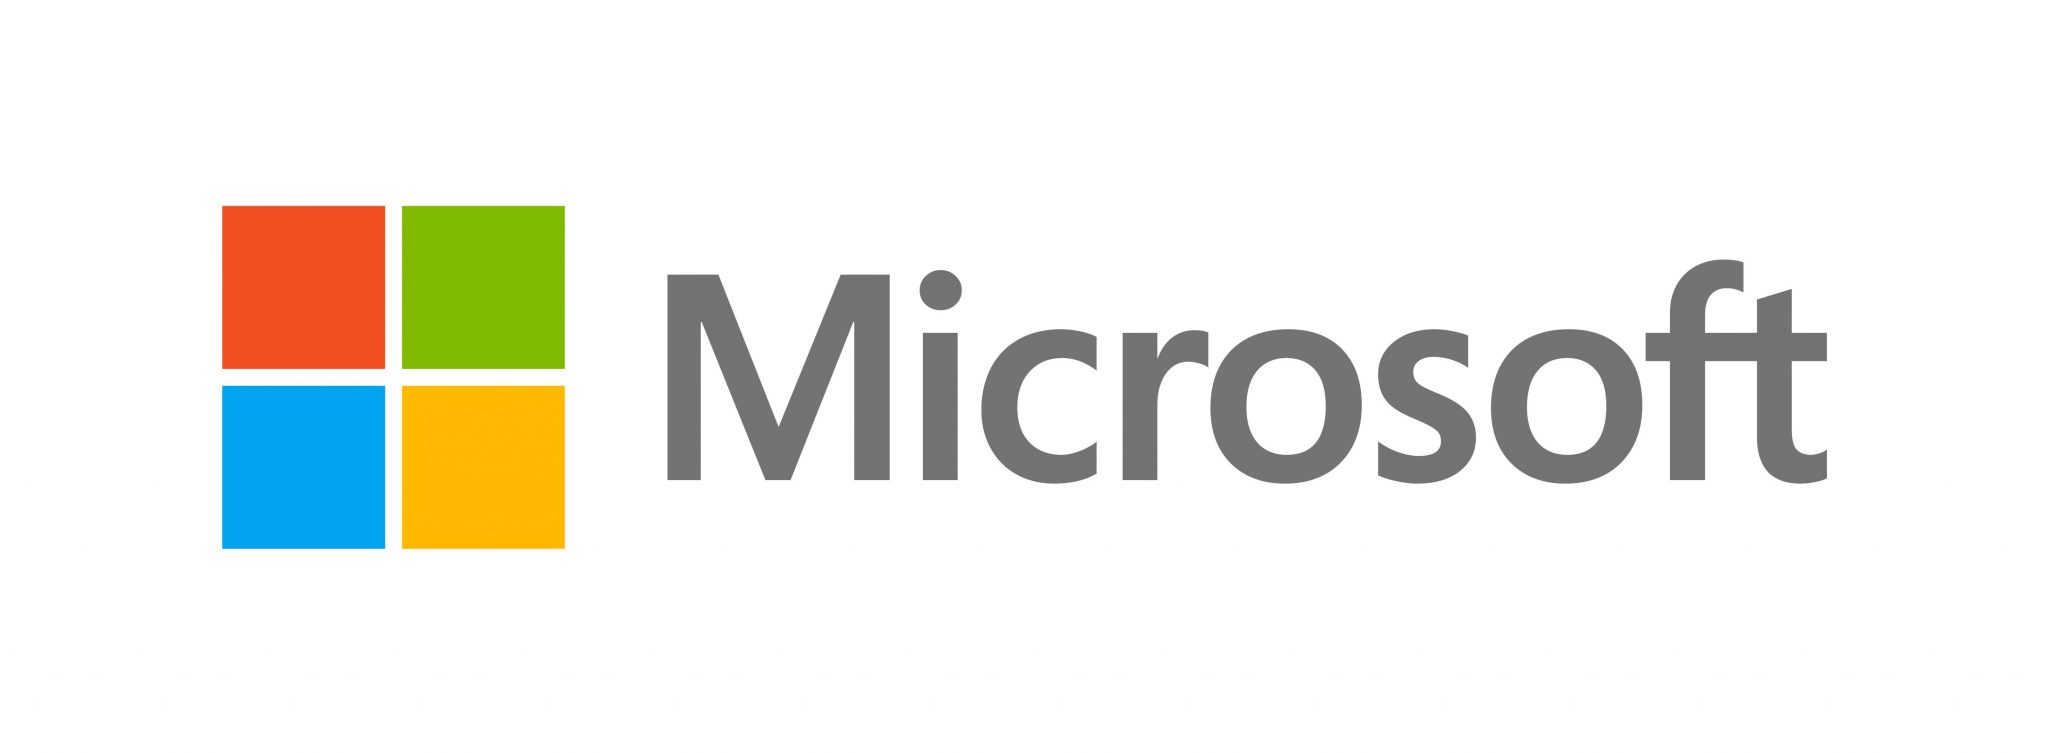 microcsoft